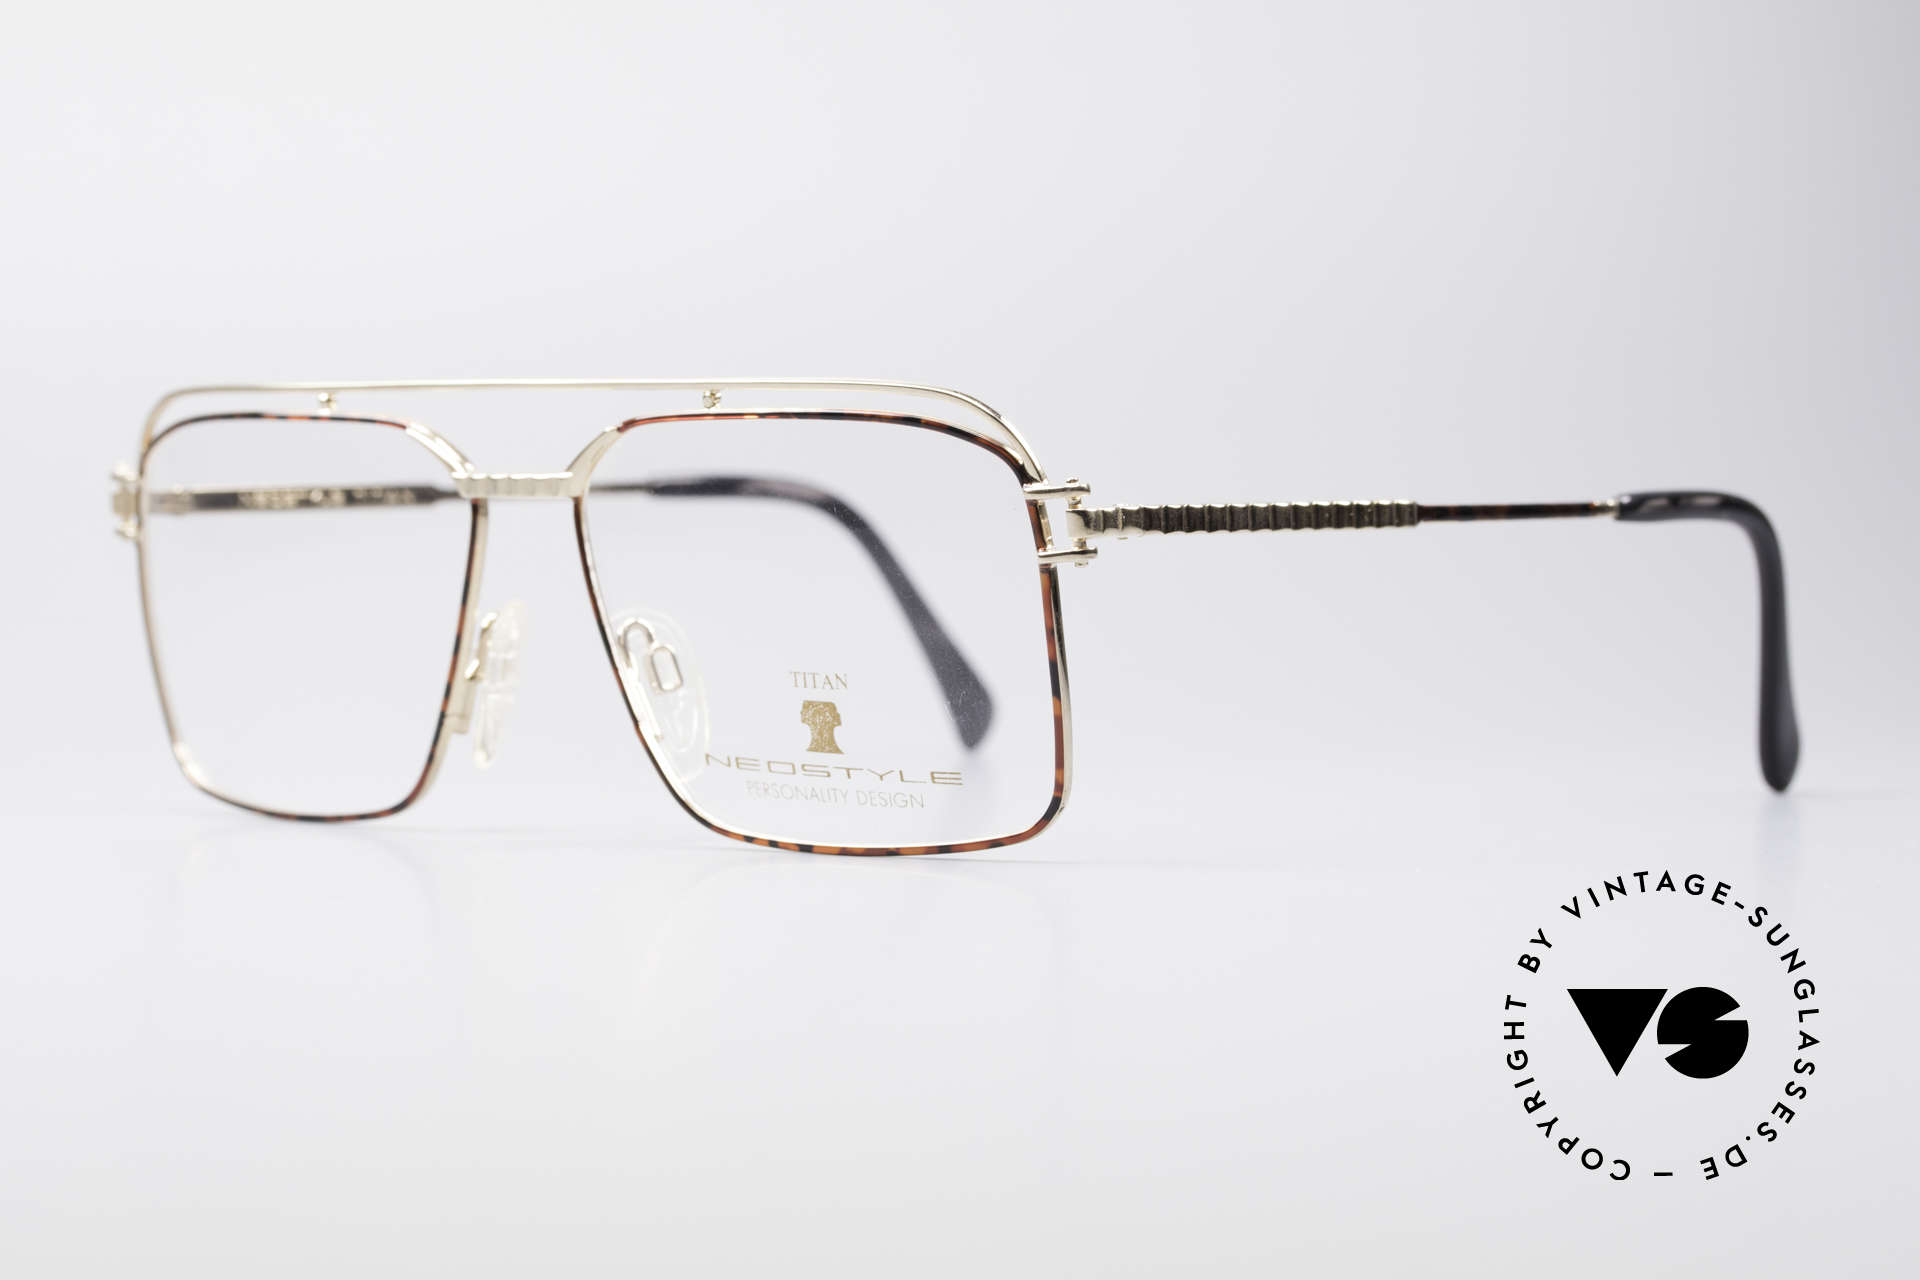 Neostyle Dynasty 424 - L 80's Titanium Men's Frame, comes with original case and cloth by Neostyle, Made for Men